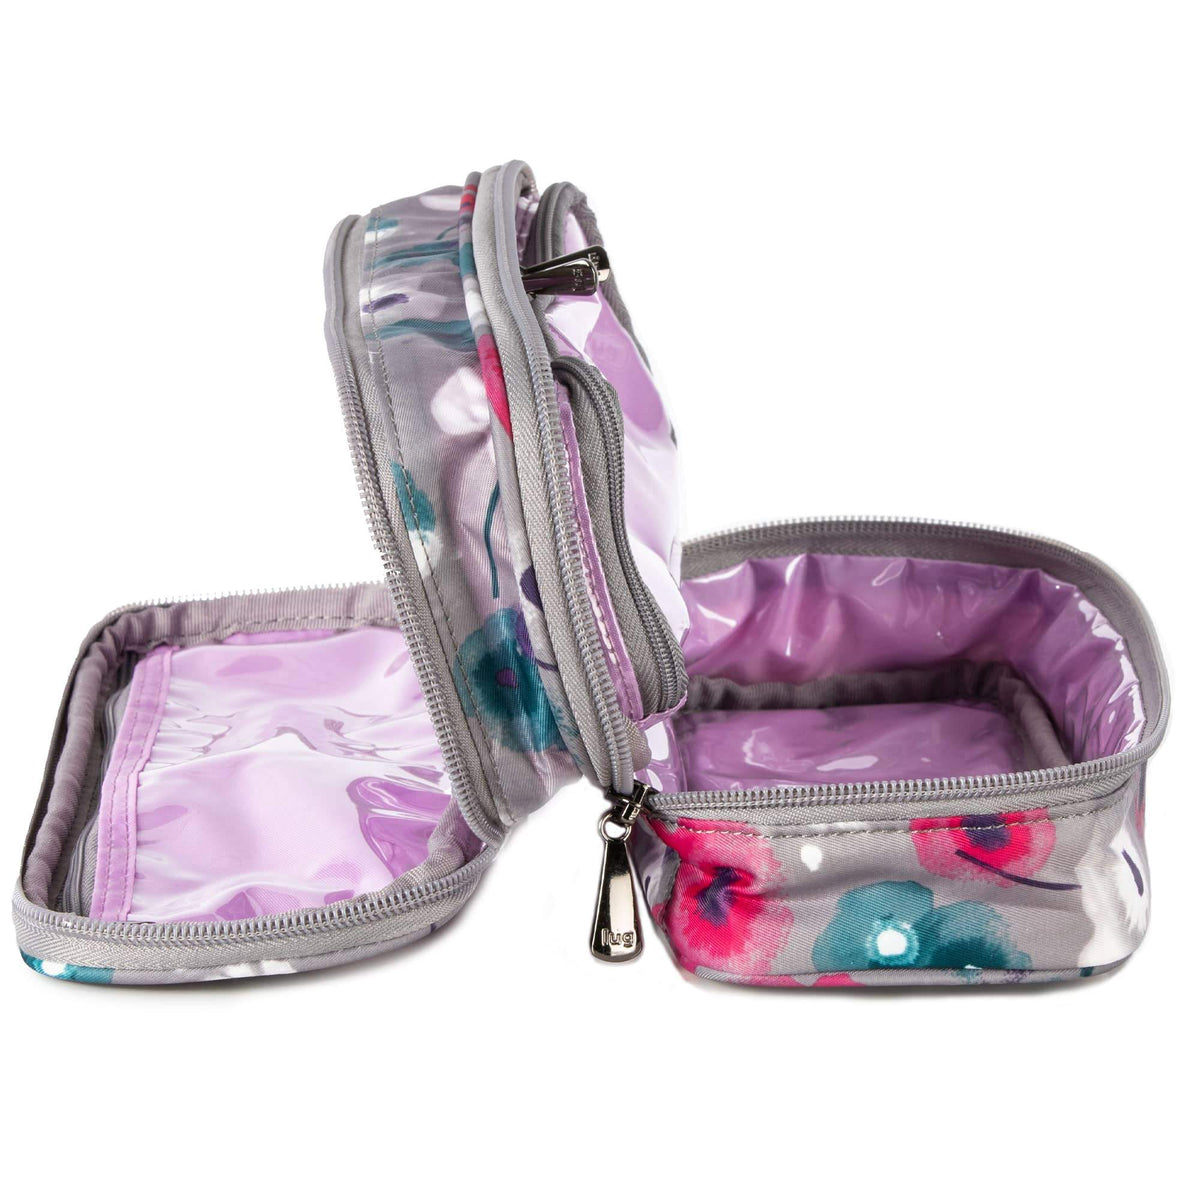 Double Decker Cosmetic Case